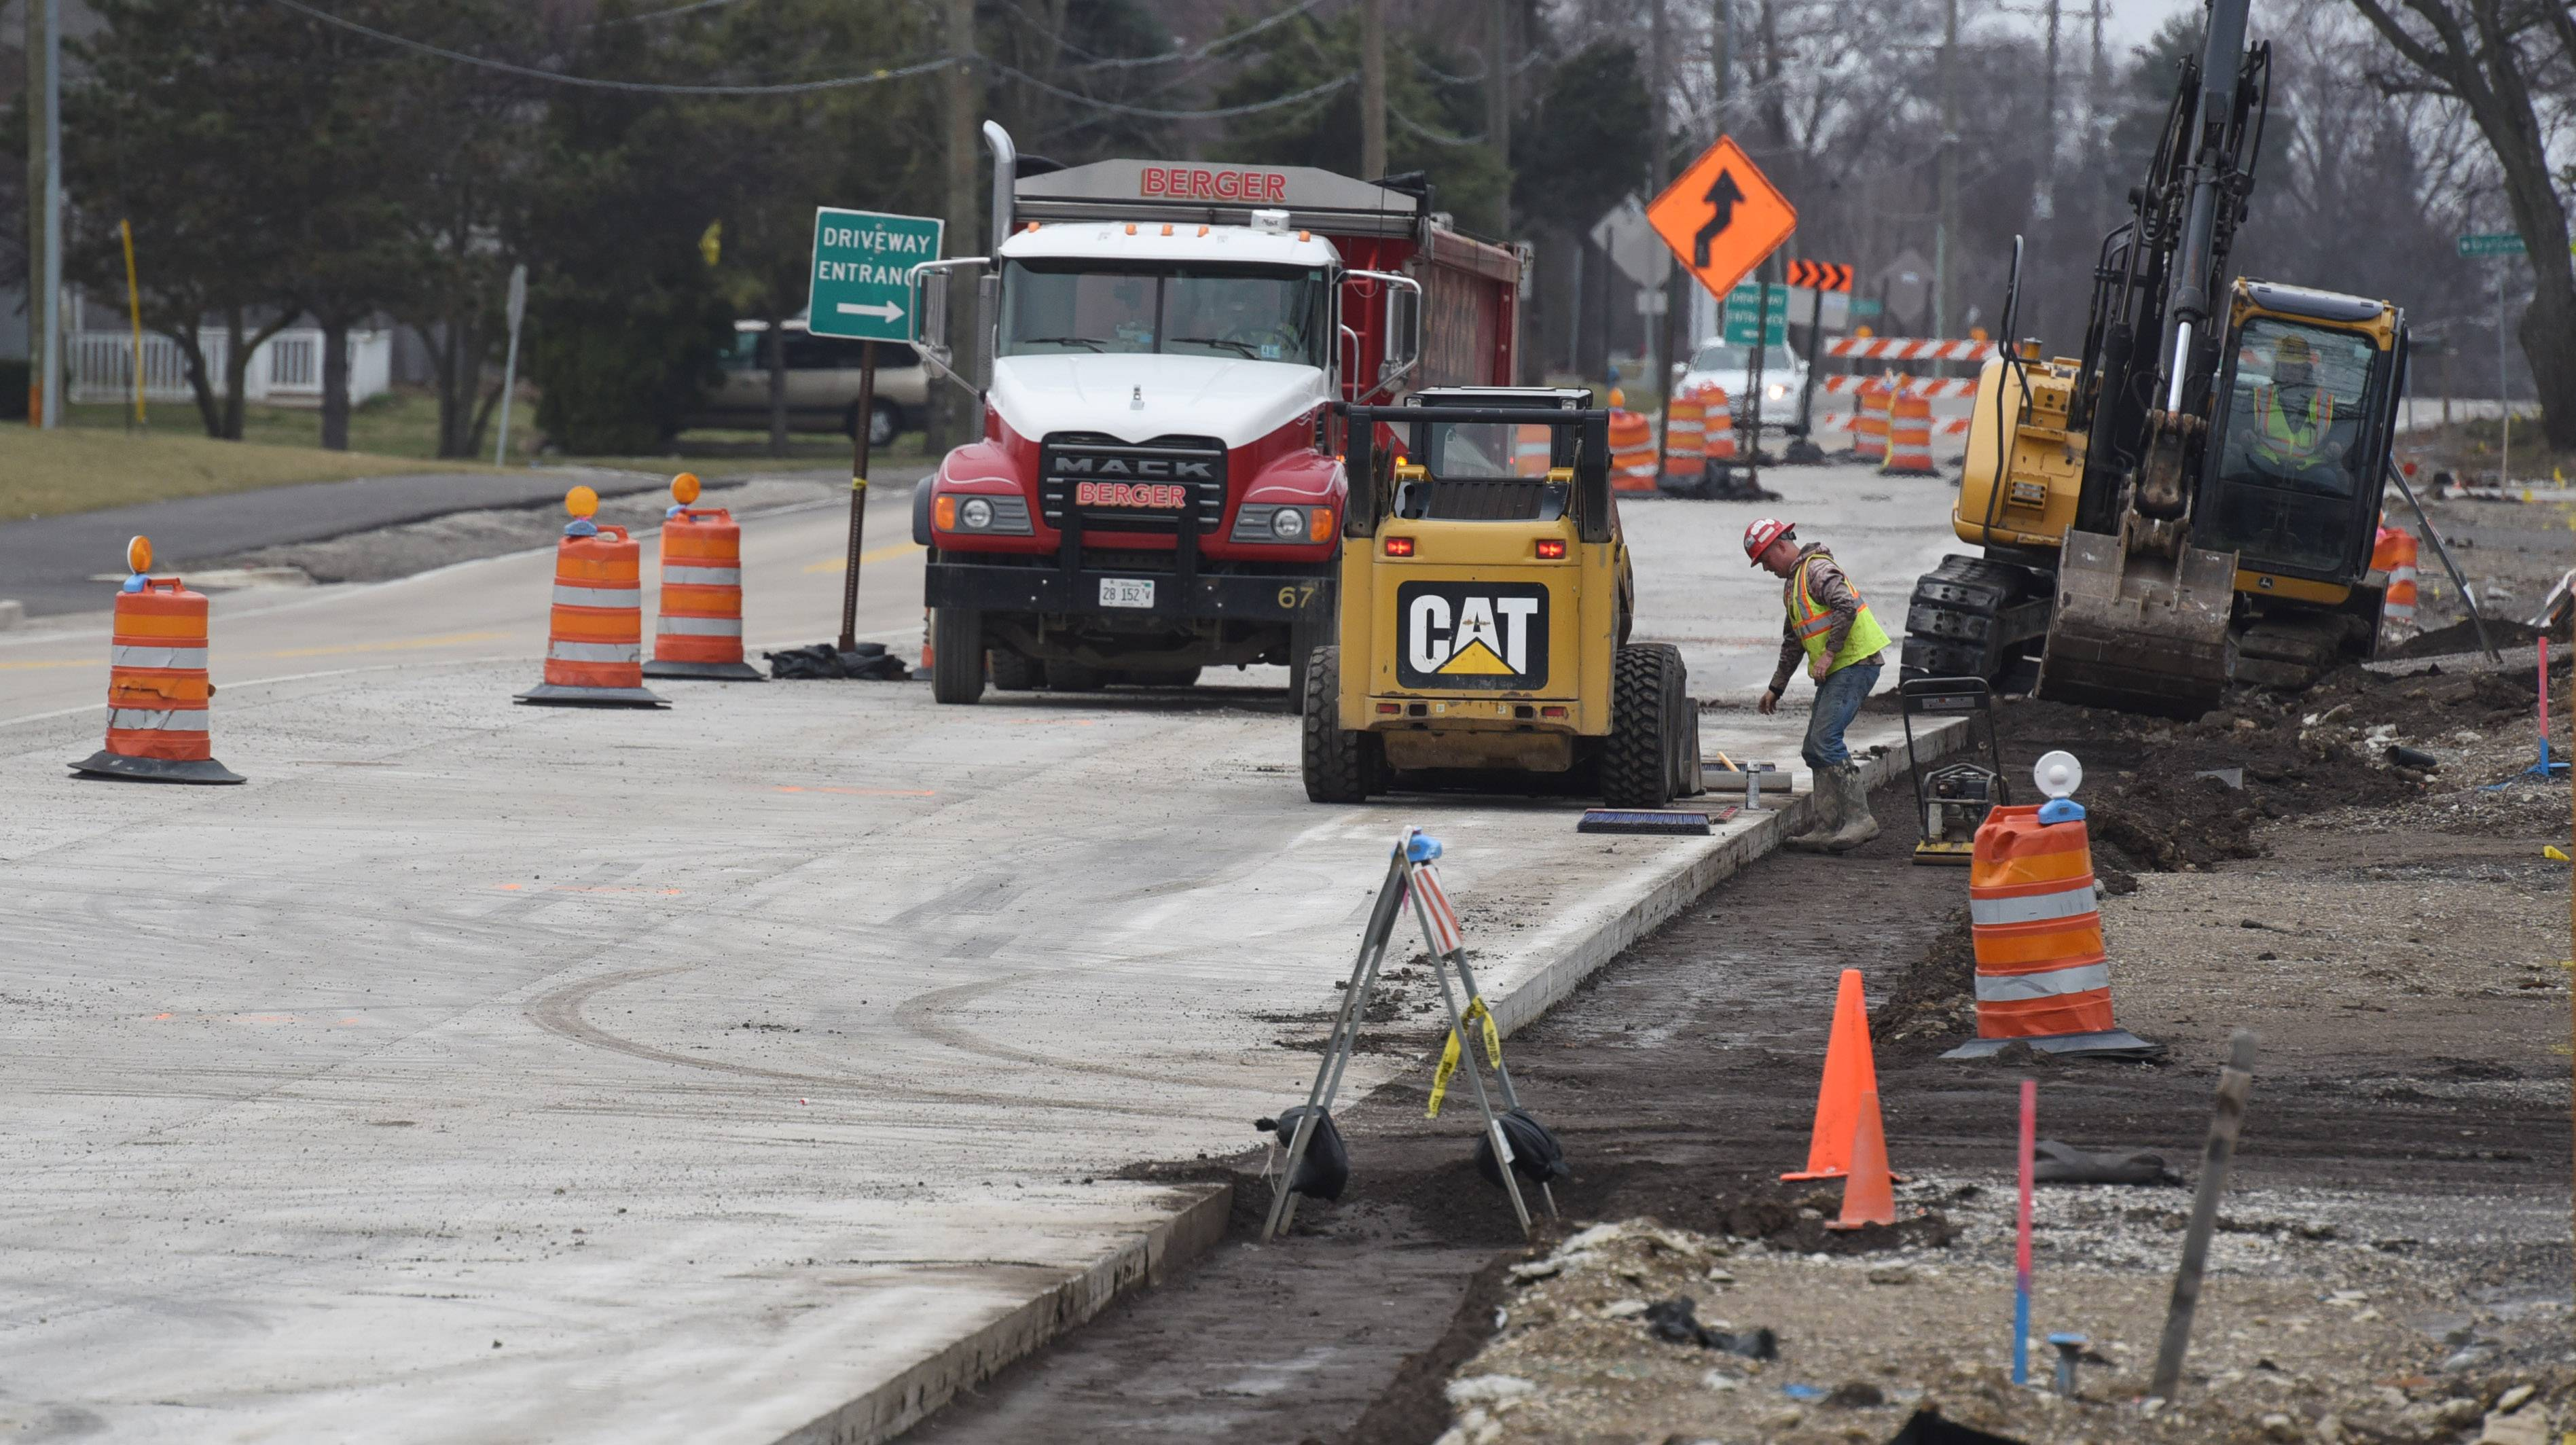 Work continues on the Washington Street widening project Tuesday morning near Hainesville Road. The project is among just a couple of major road initiatives taking place in Lake County this year.